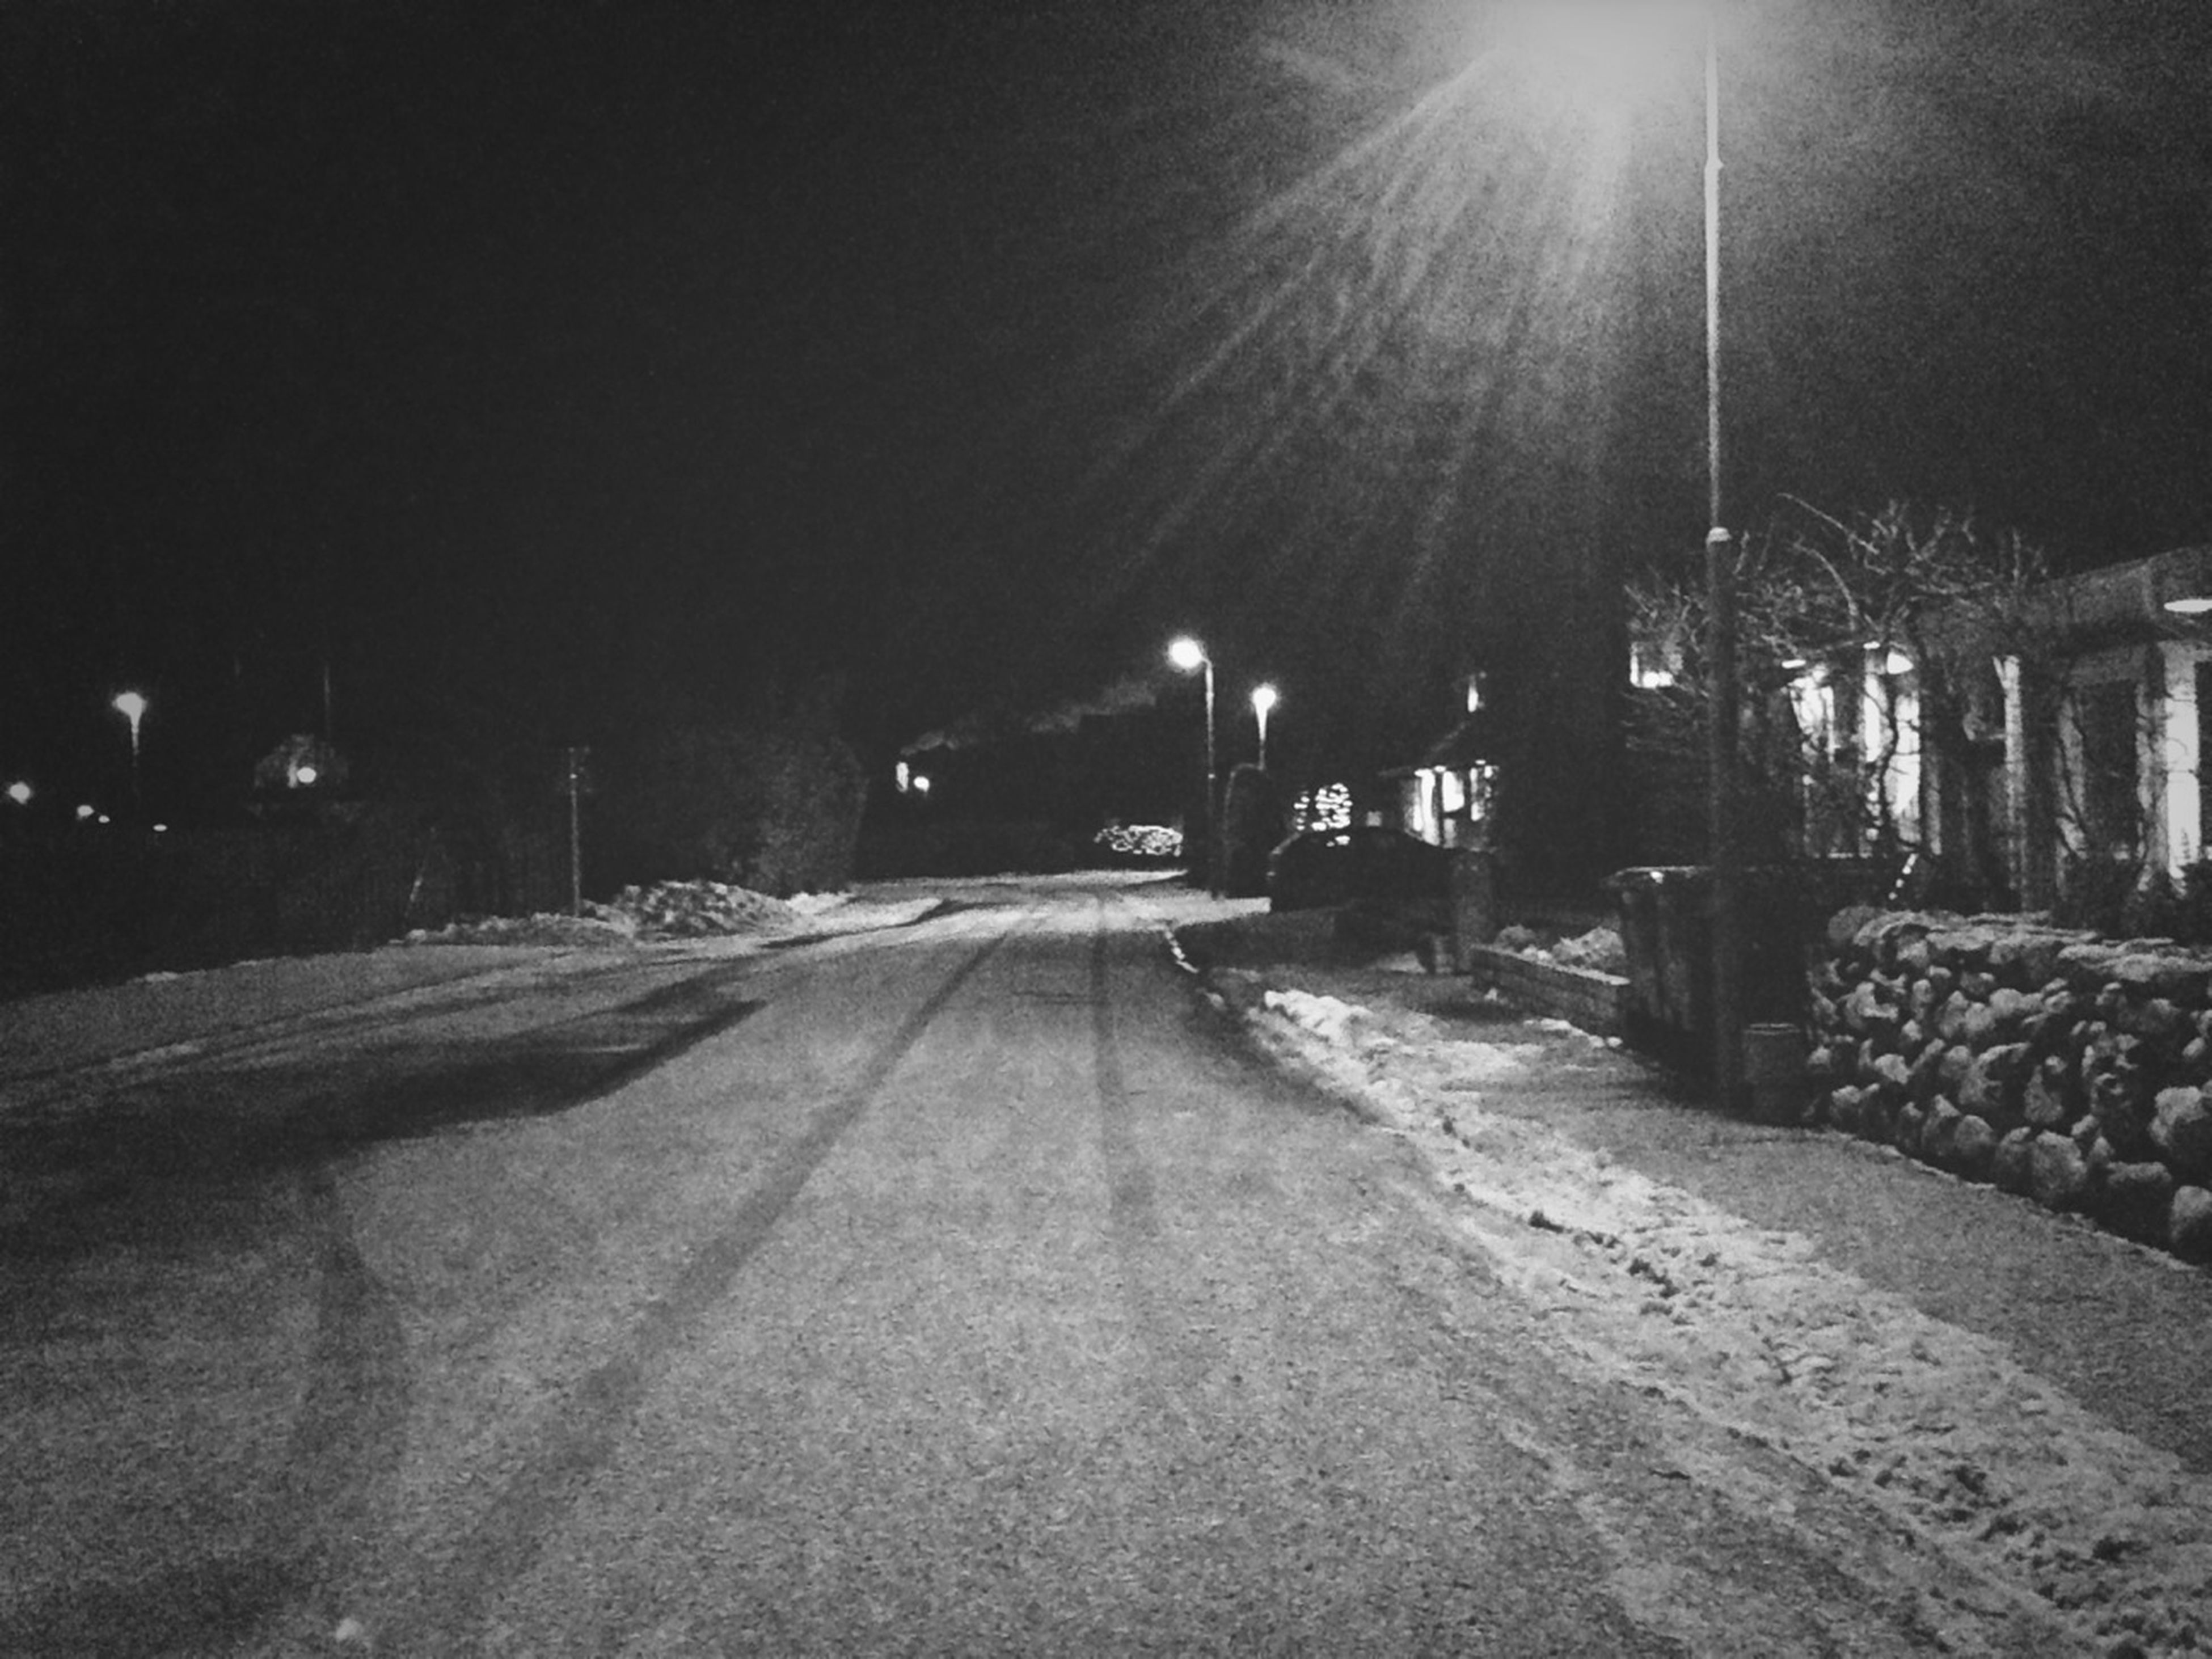 the way forward, night, transportation, diminishing perspective, vanishing point, illuminated, road, street light, empty, street, long, empty road, lighting equipment, outdoors, built structure, no people, absence, lens flare, sunlight, clear sky